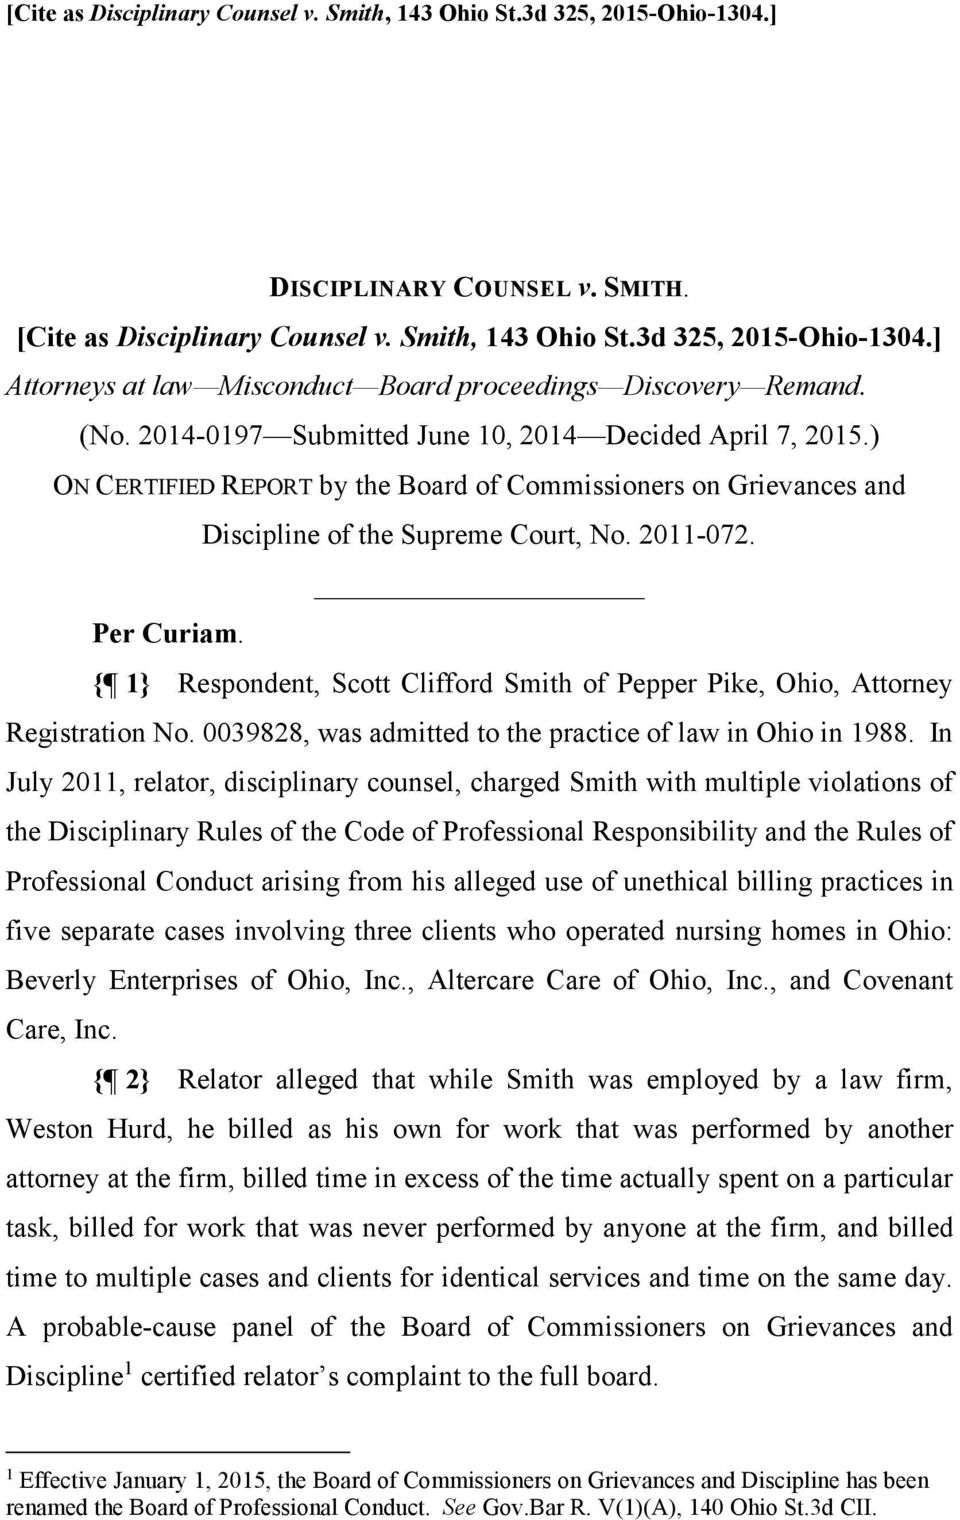 { 1} Respondent, Scott Clifford Smith of Pepper Pike, Ohio, Attorney Registration No. 0039828, was admitted to the practice of law in Ohio in 1988.